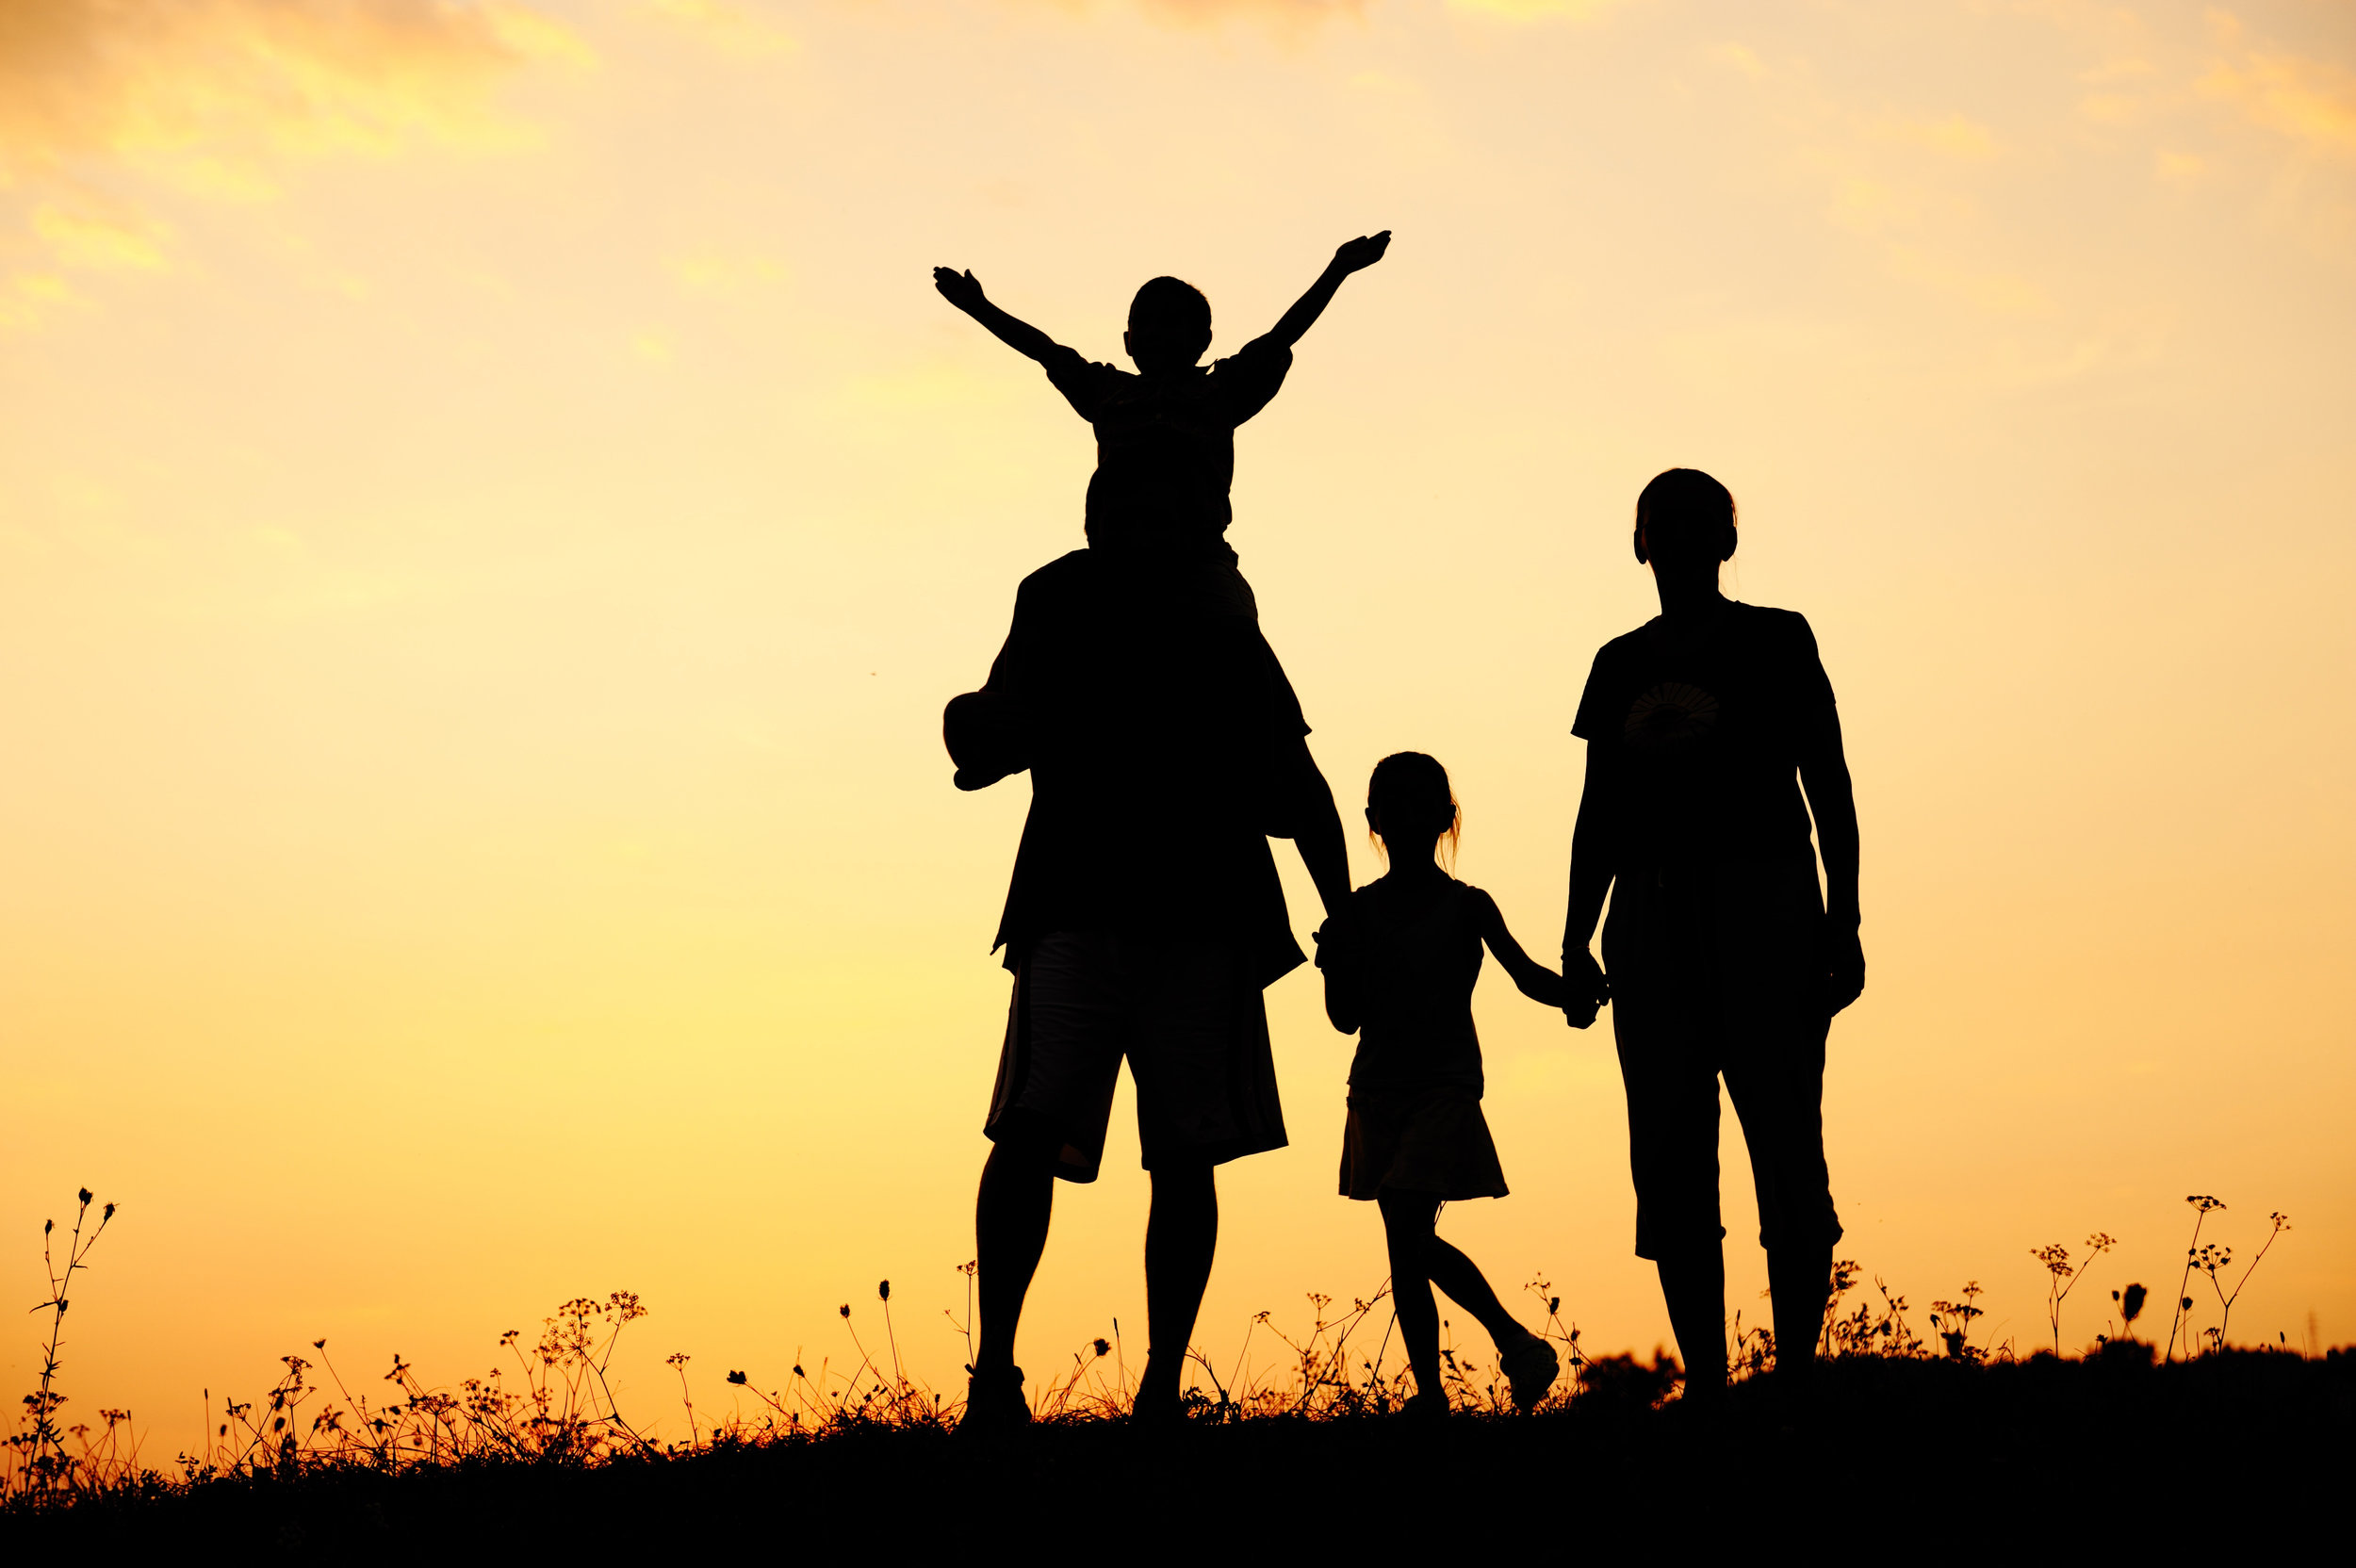 PARENT SUMMIT - Join us for this year's Summit & find resources from past Summits